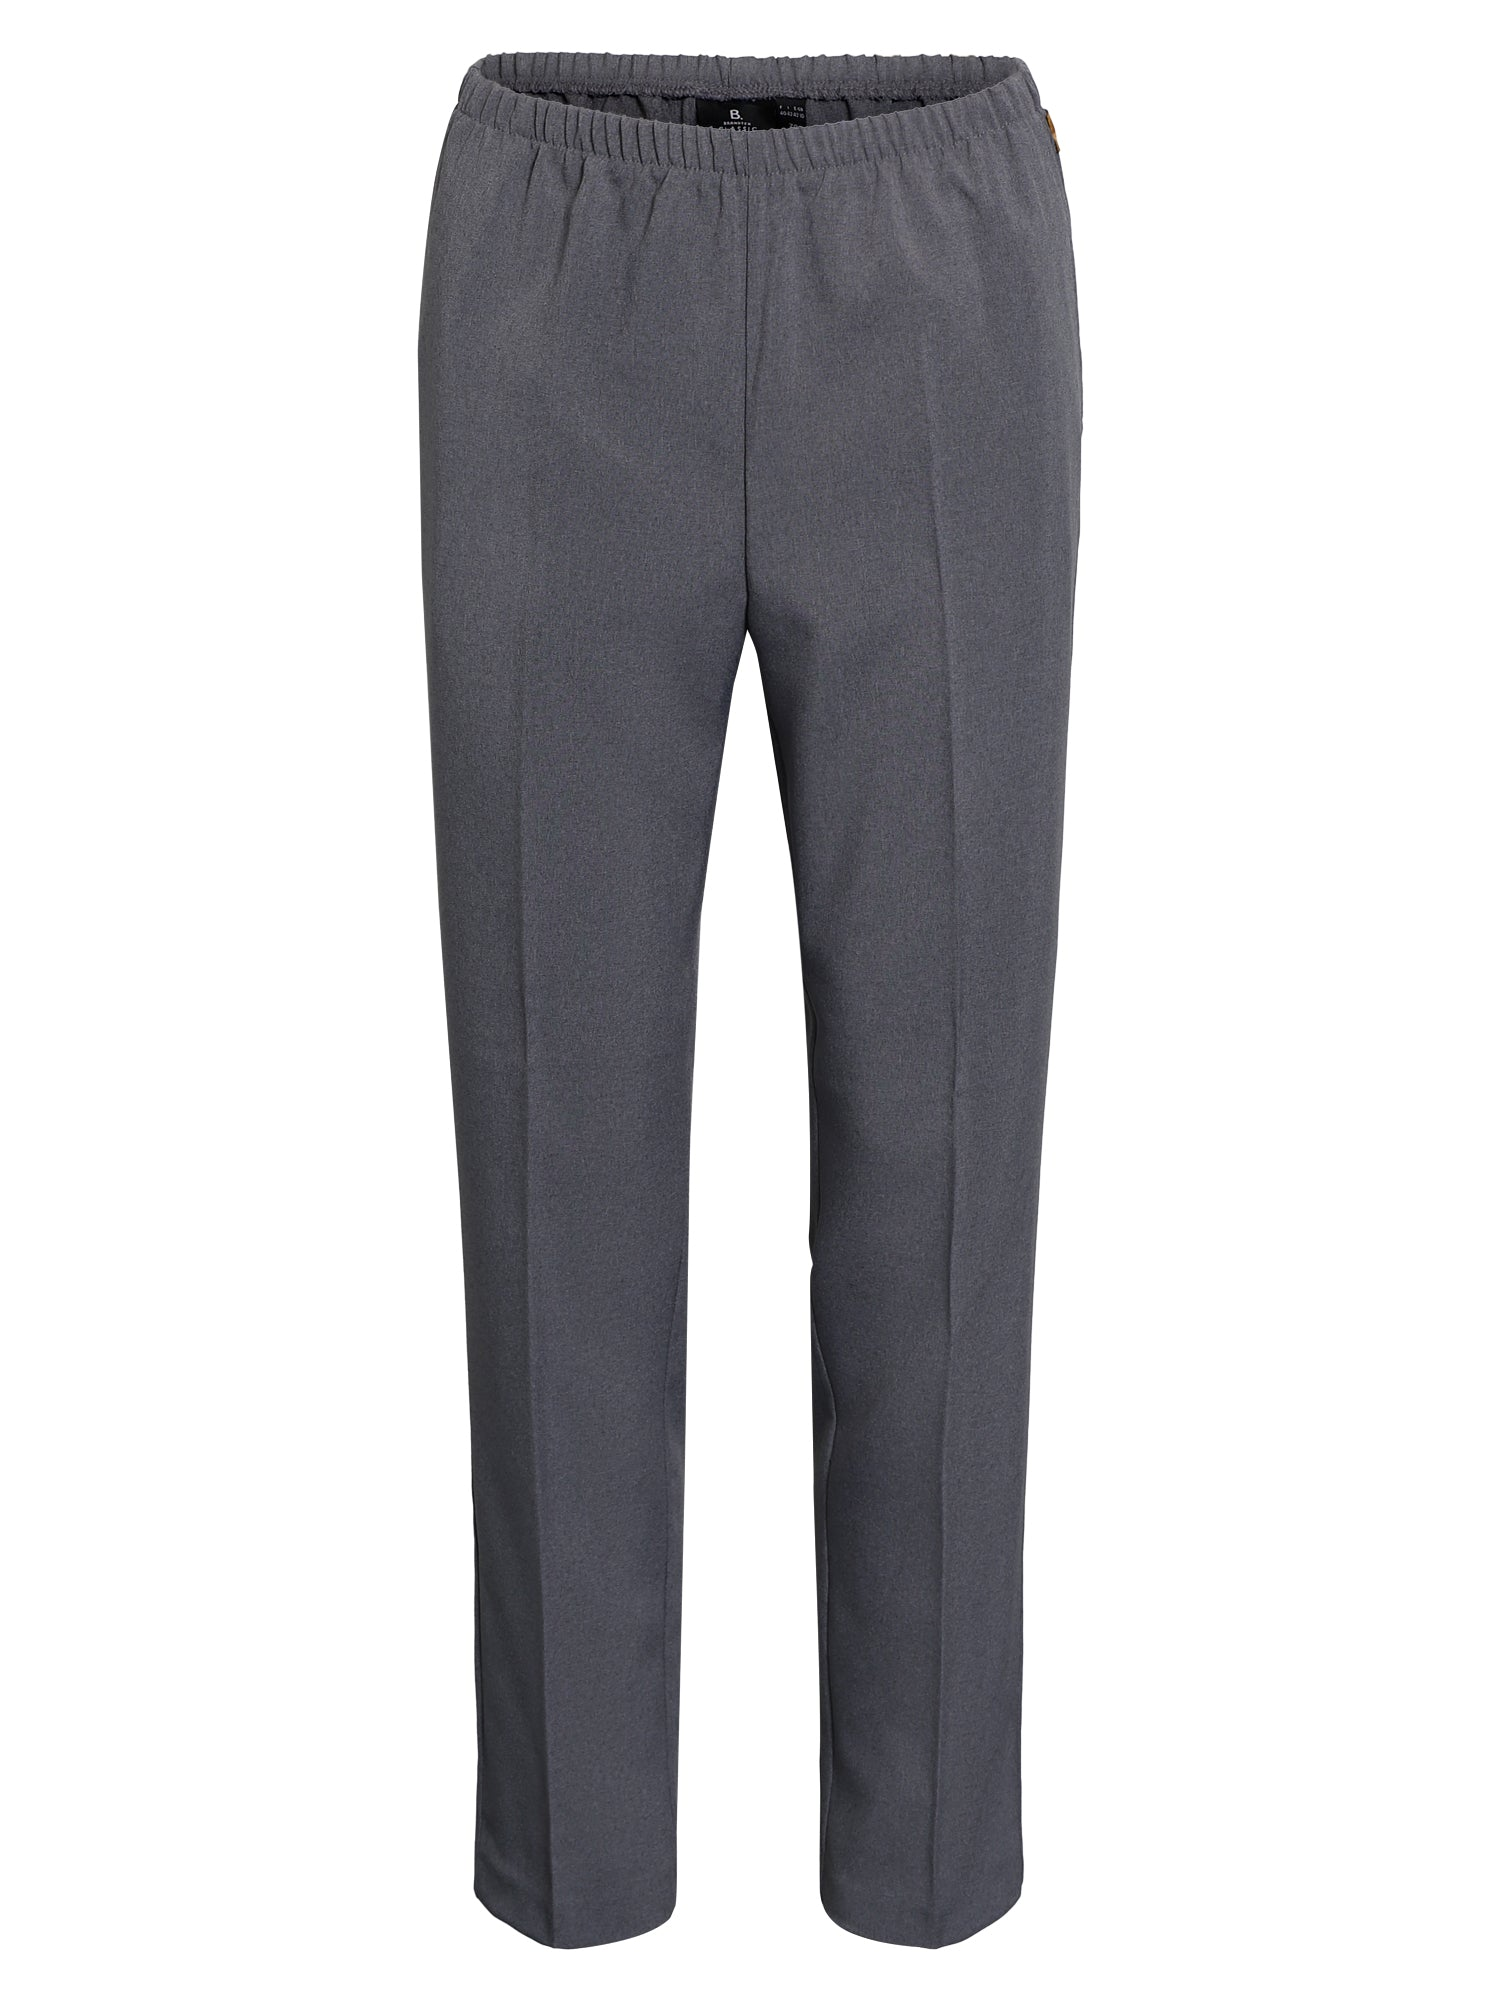 Image of   Bukser med elastik Anna - Washed Grey